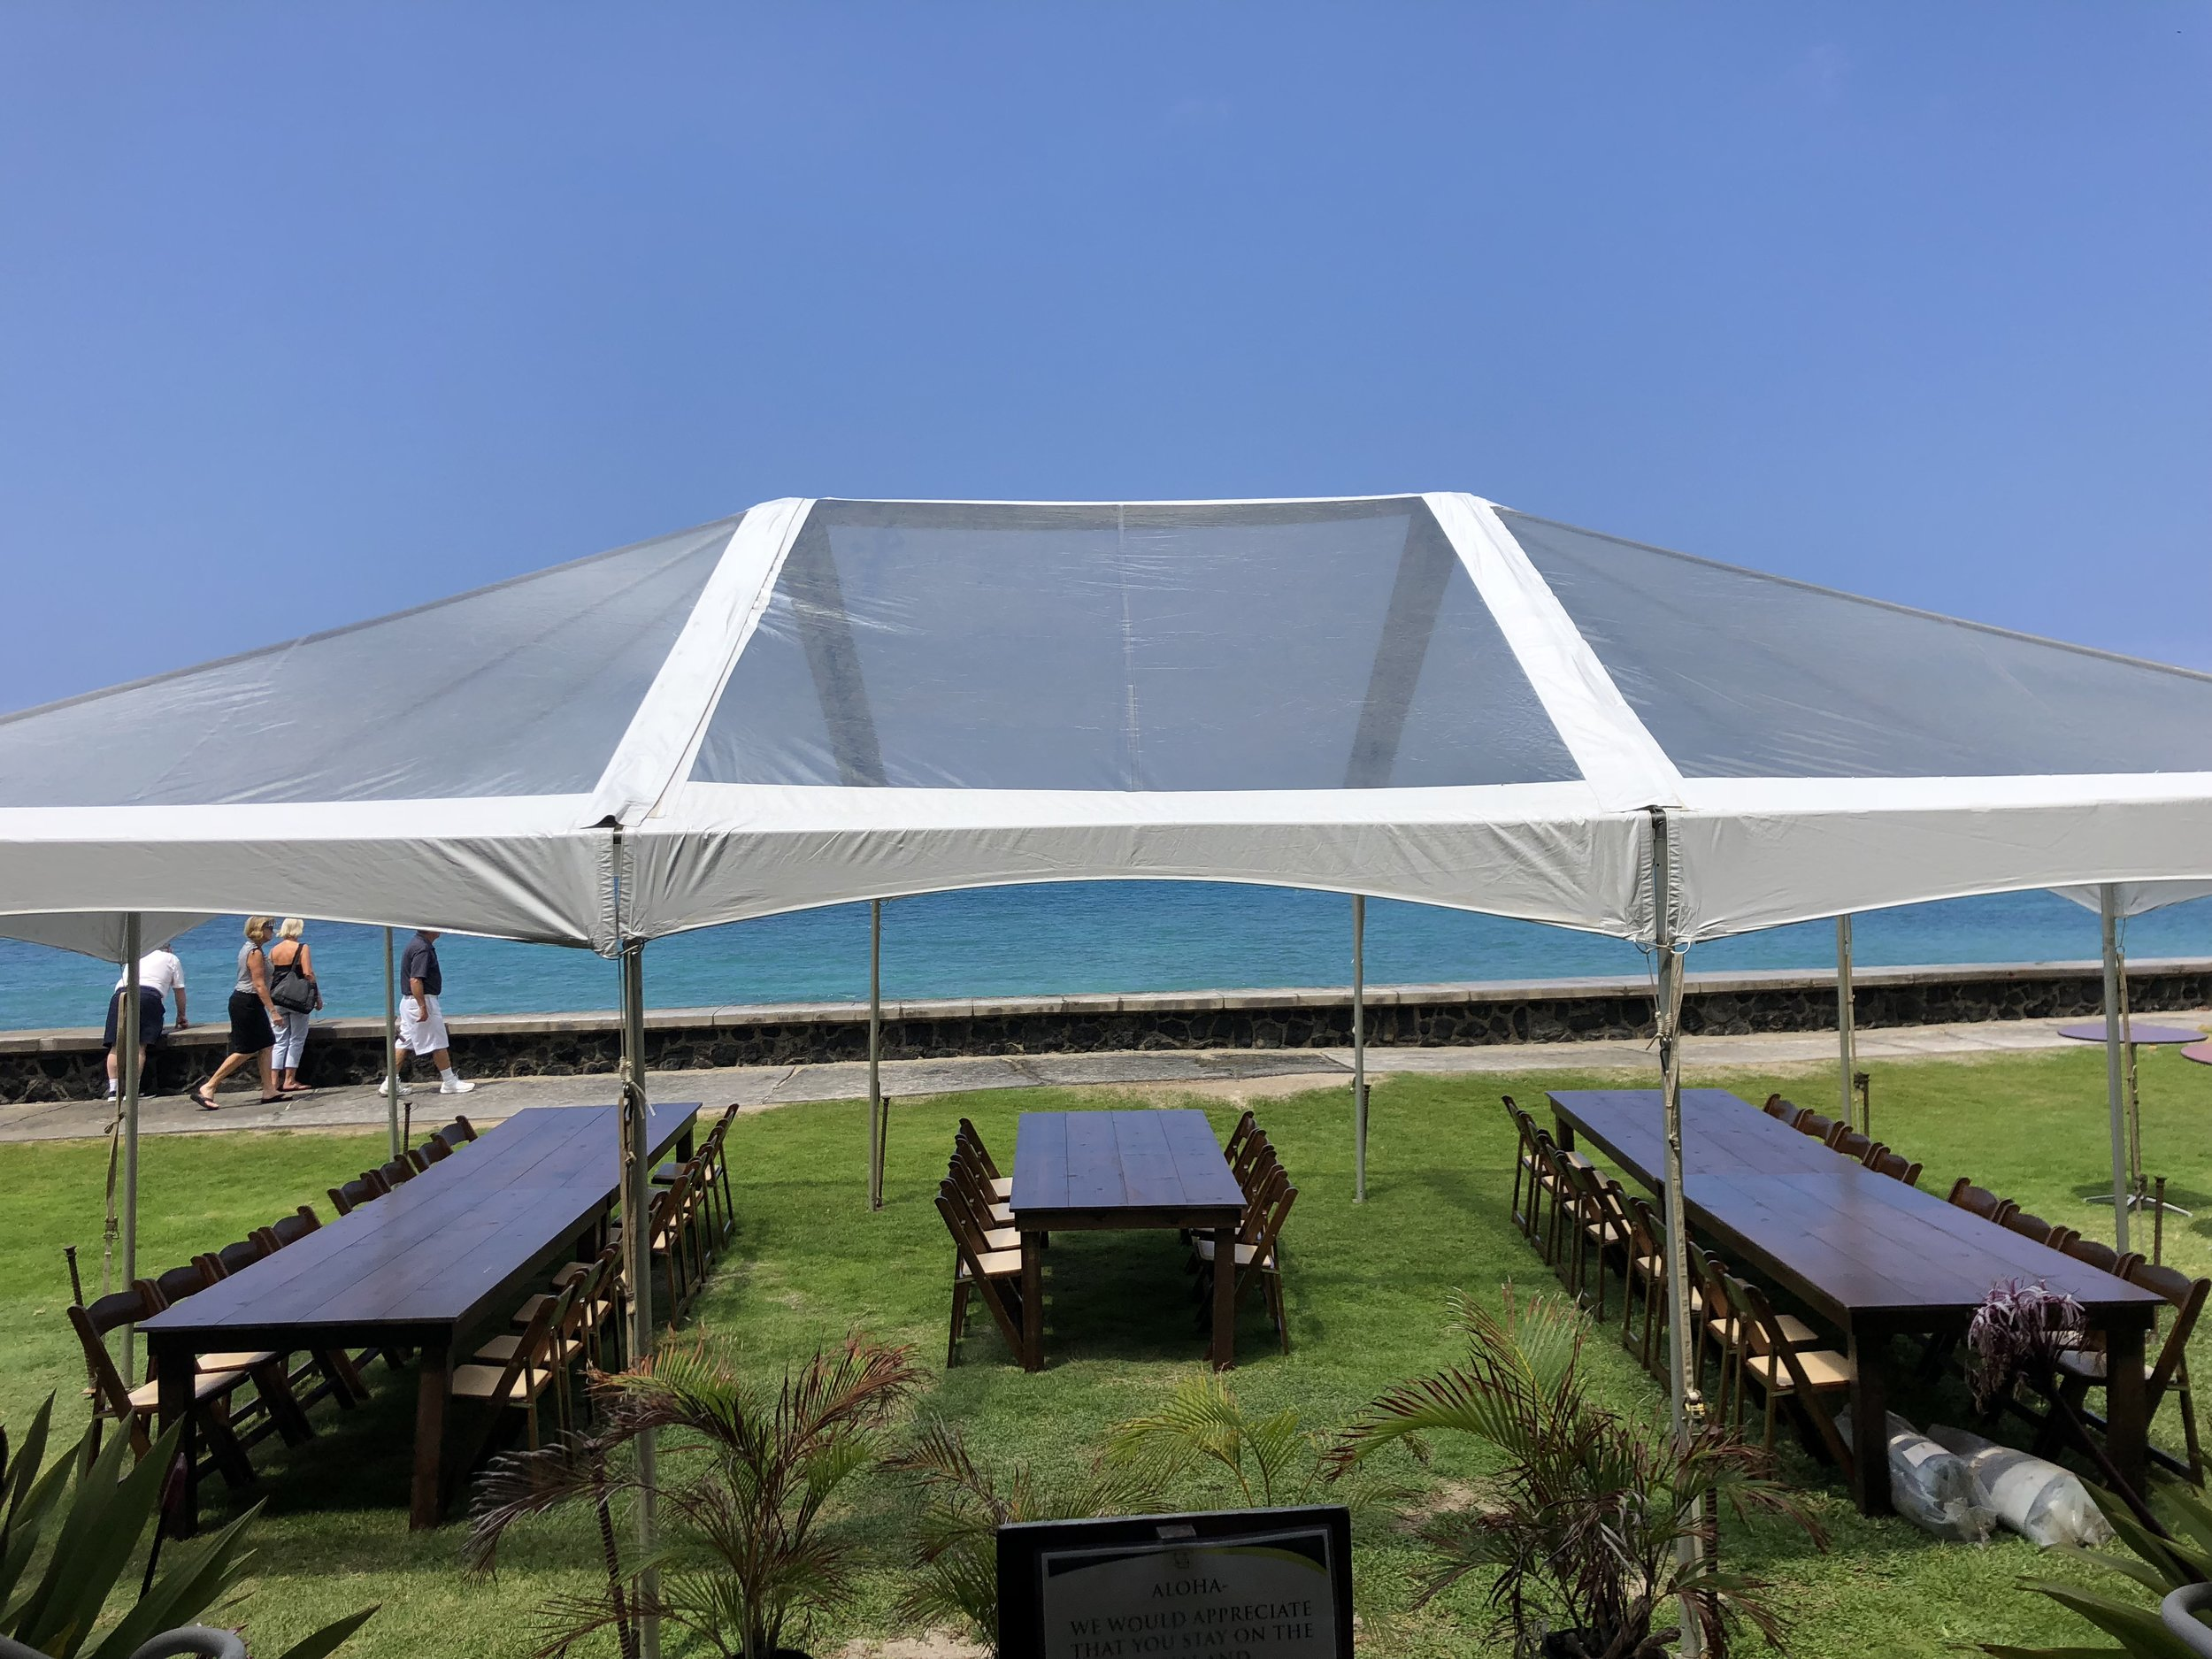 20x clear tent at Hulihee Palace (ocean side), with dark wood farm tables and dark wood padded folding chairs.